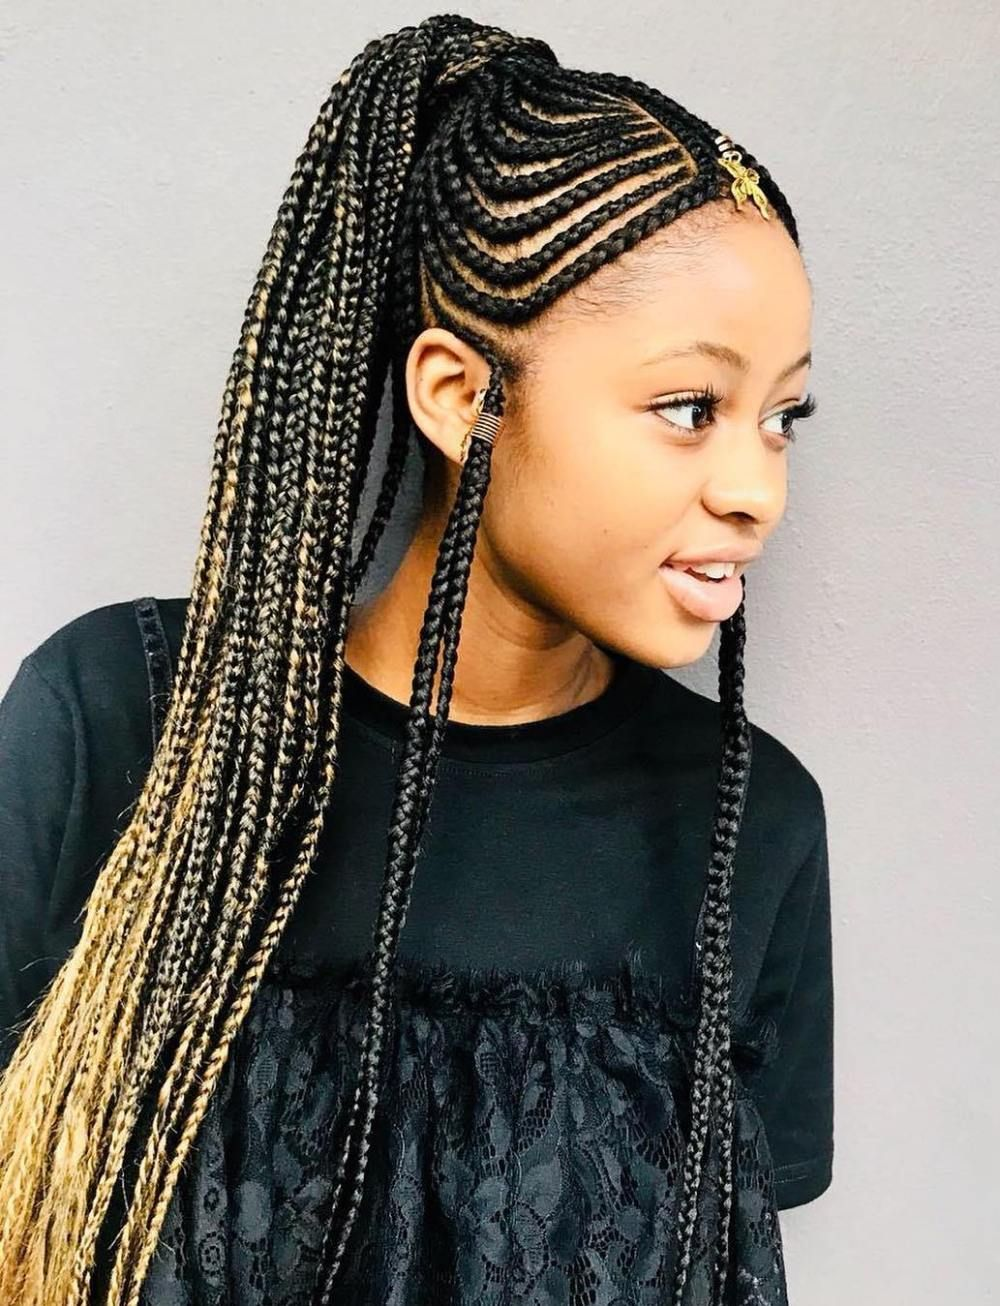 20 Amazing Fulani Braids For Women Of All Ages Cool Braid Hairstyles African Braids Hairstyles Braided Hairstyles